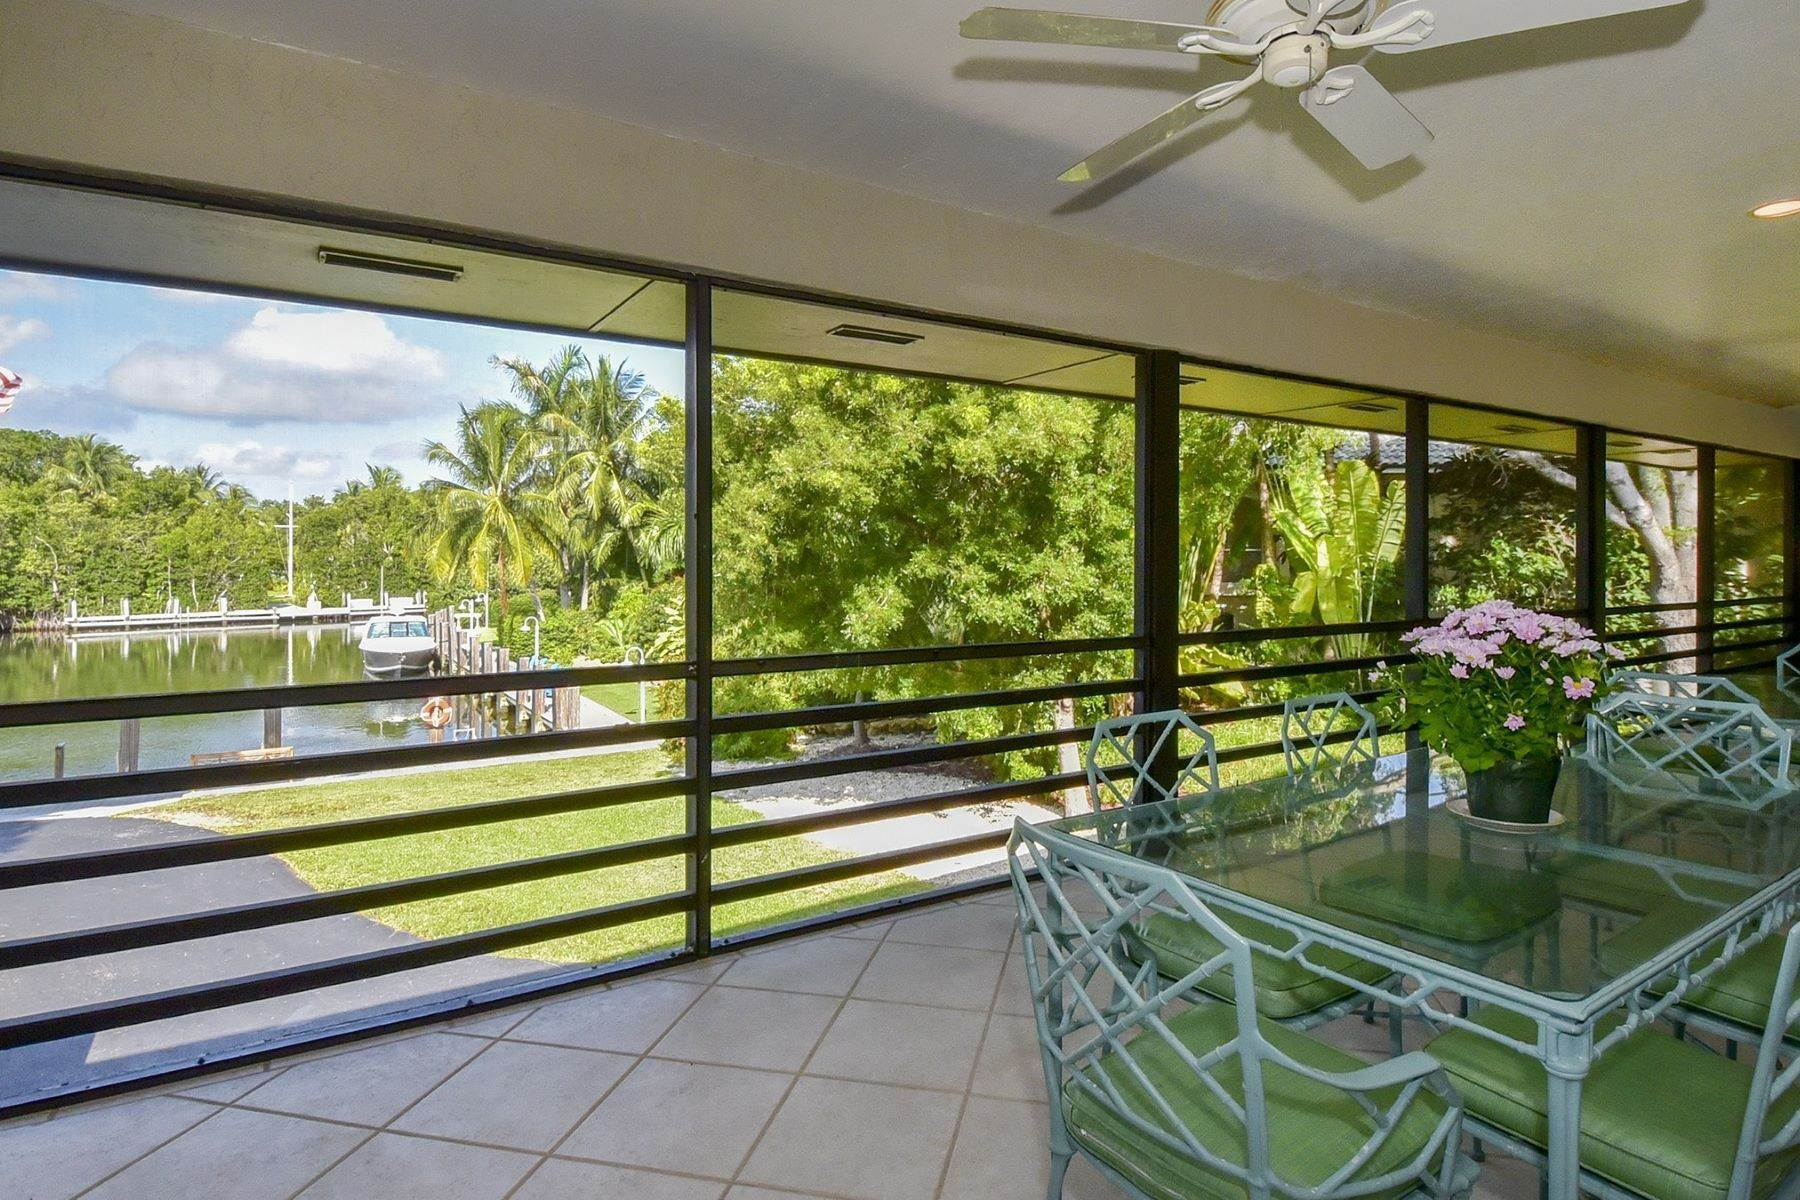 44. Property for Sale at 10 Cannon Point, Key Largo, FL Key Largo, Florida 33037 United States